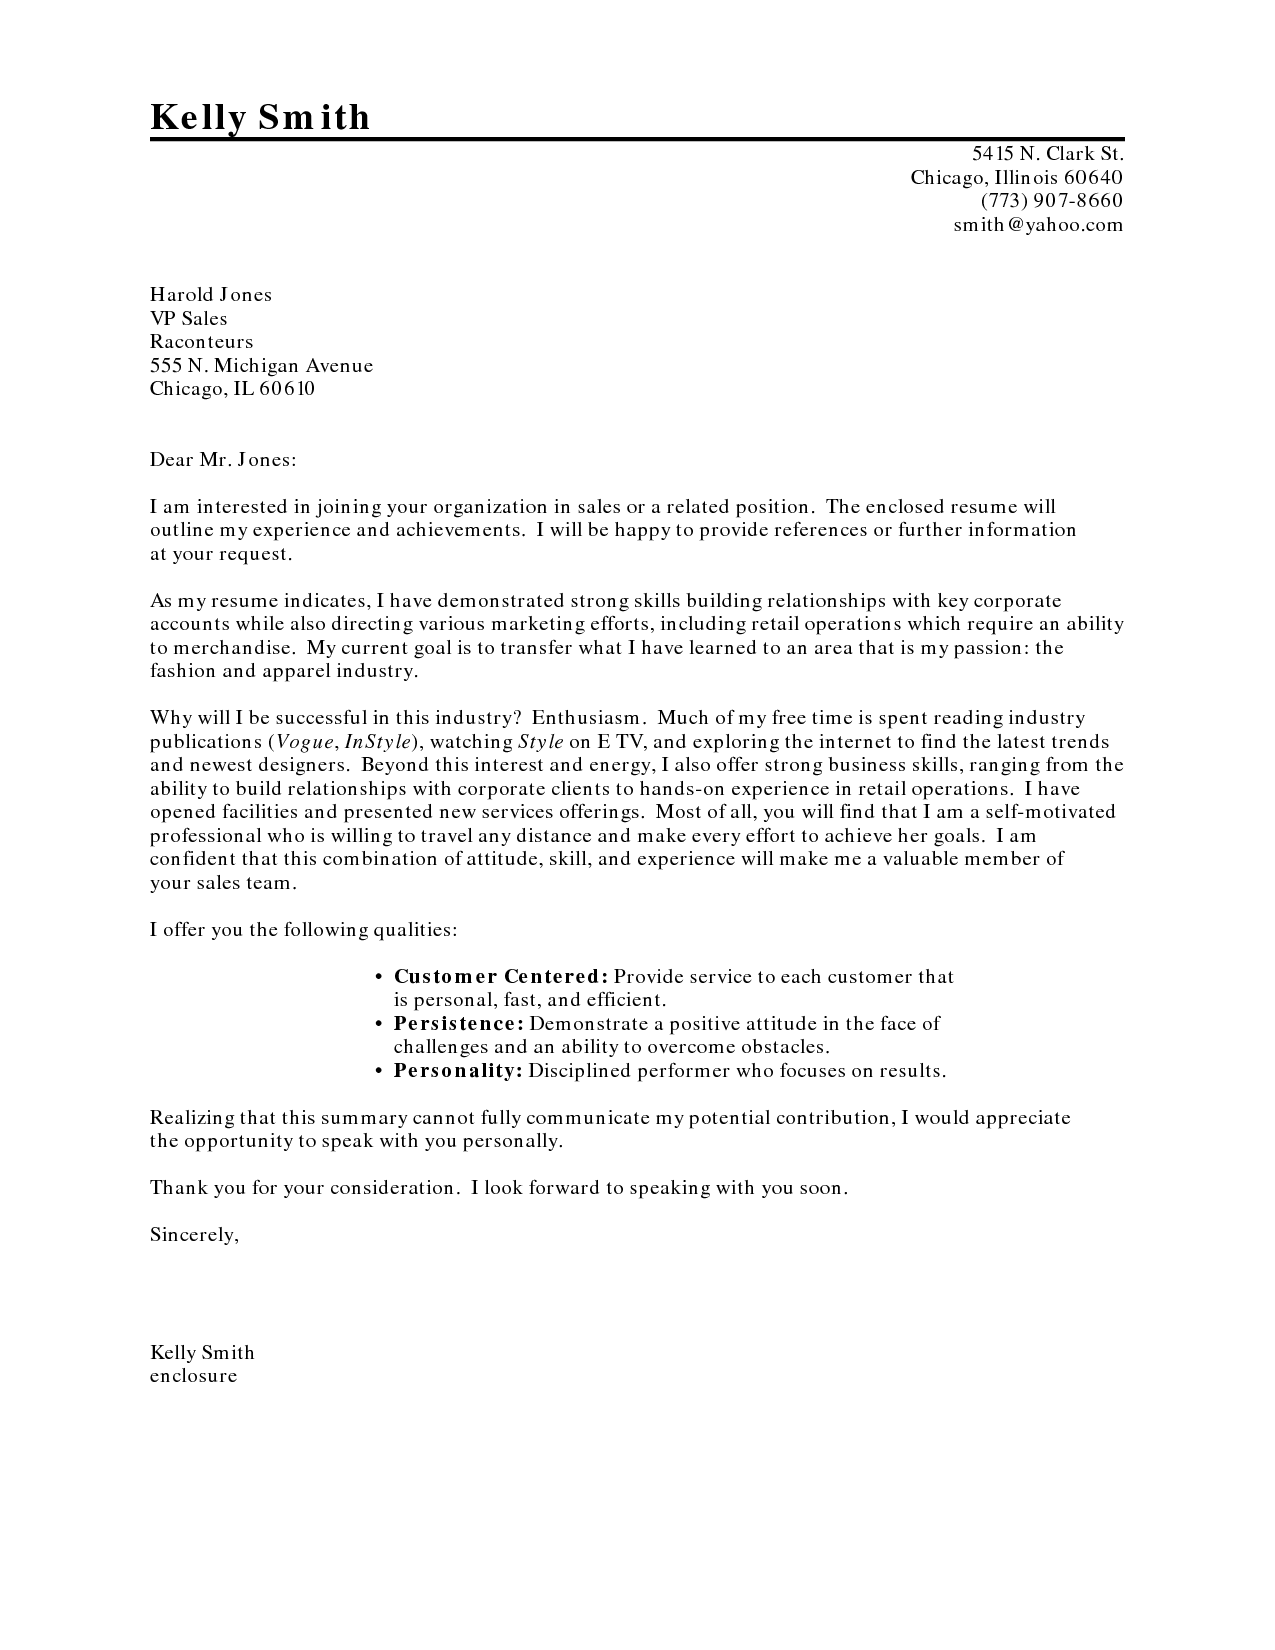 Career Change Cover Lettersimple Cover Letter Application Letter